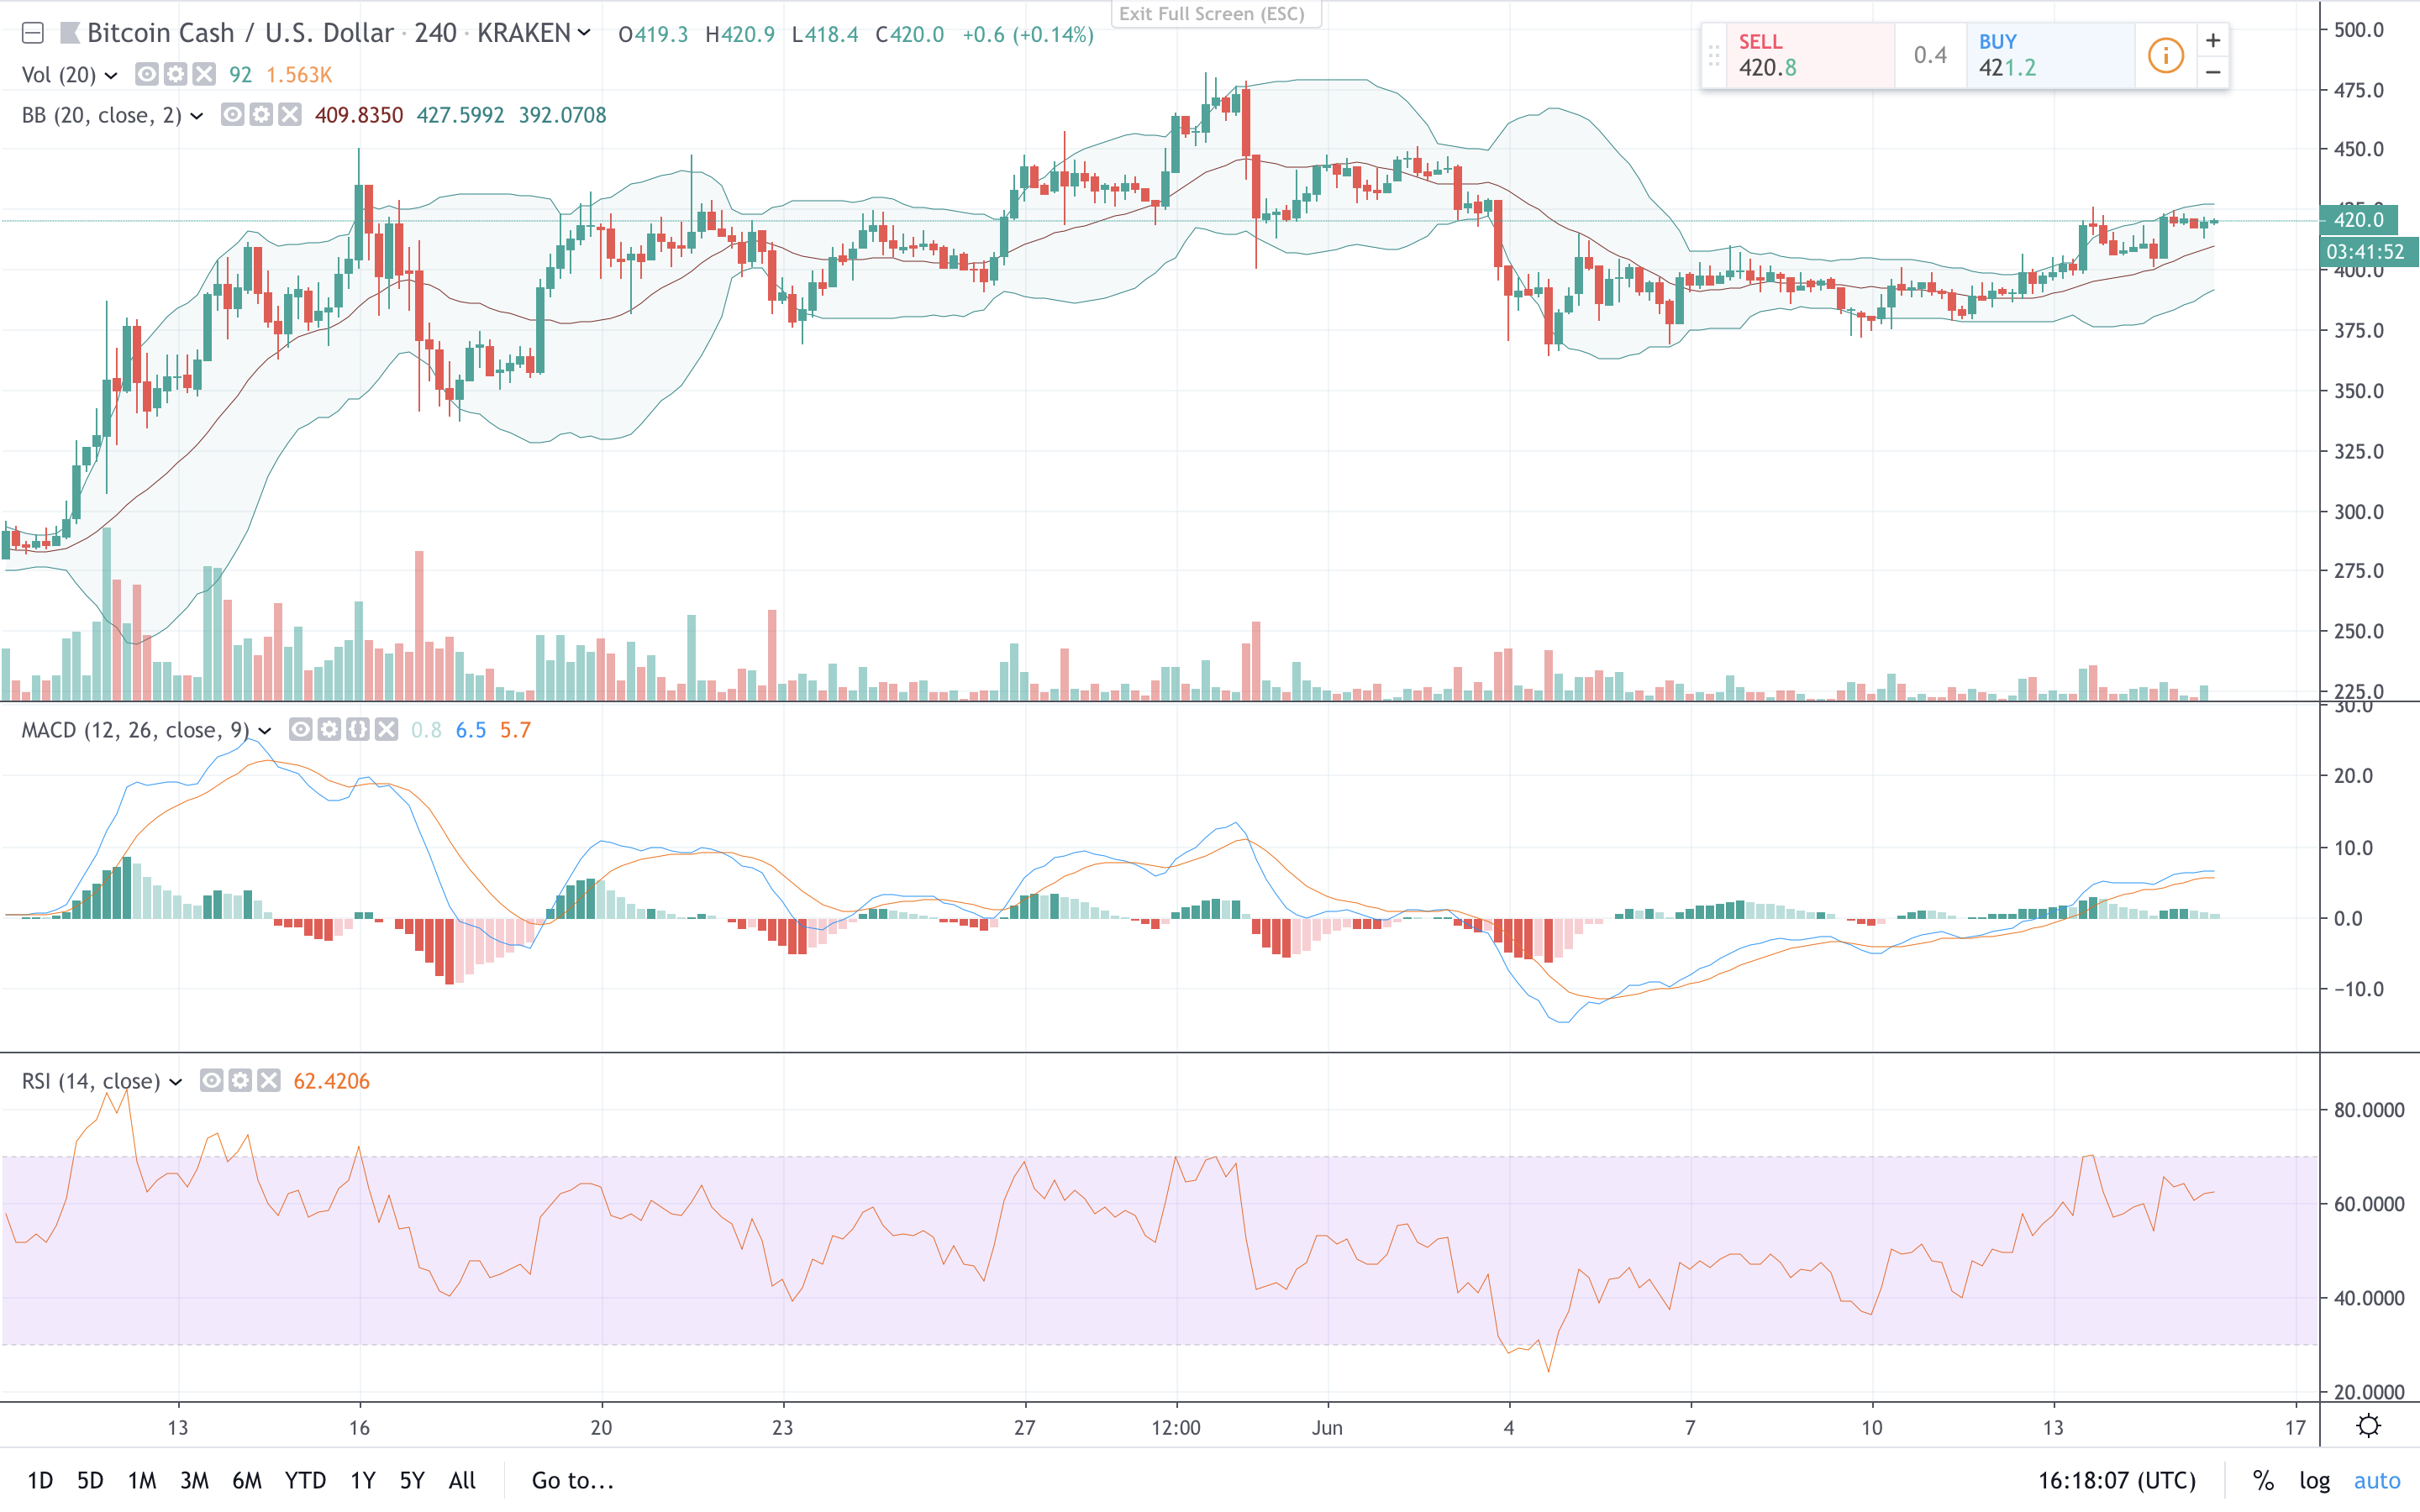 Markets Update: Crypto Prices Surge After Last Week's Pullback